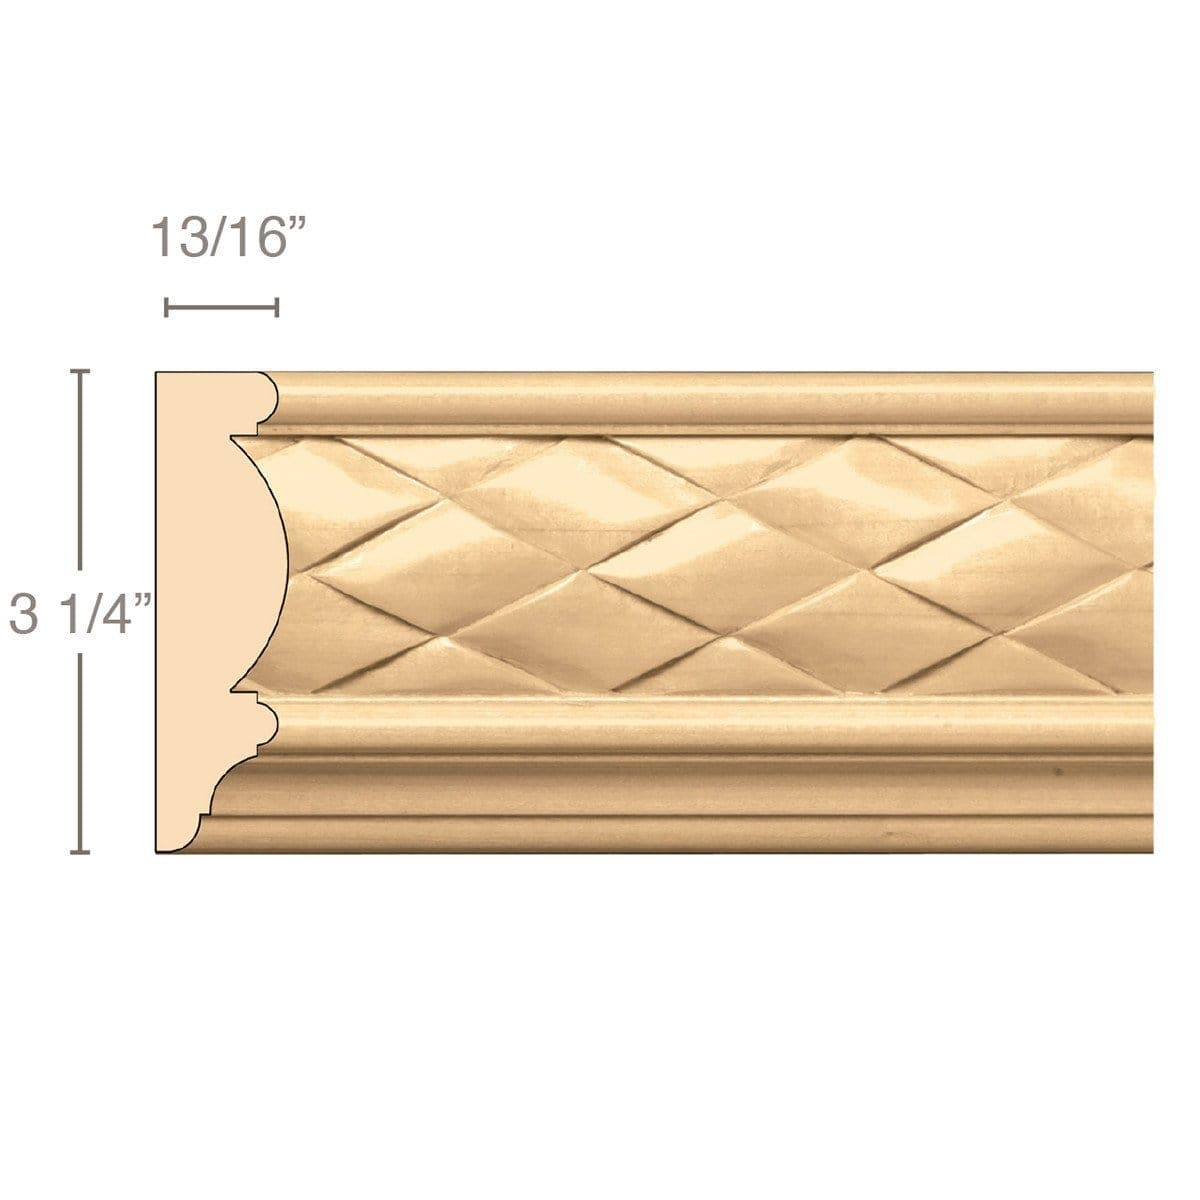 Woven Frieze (Repeats 2), 3 1/4''w x 13/16''d x 8' length, Resin is priced per 8' length